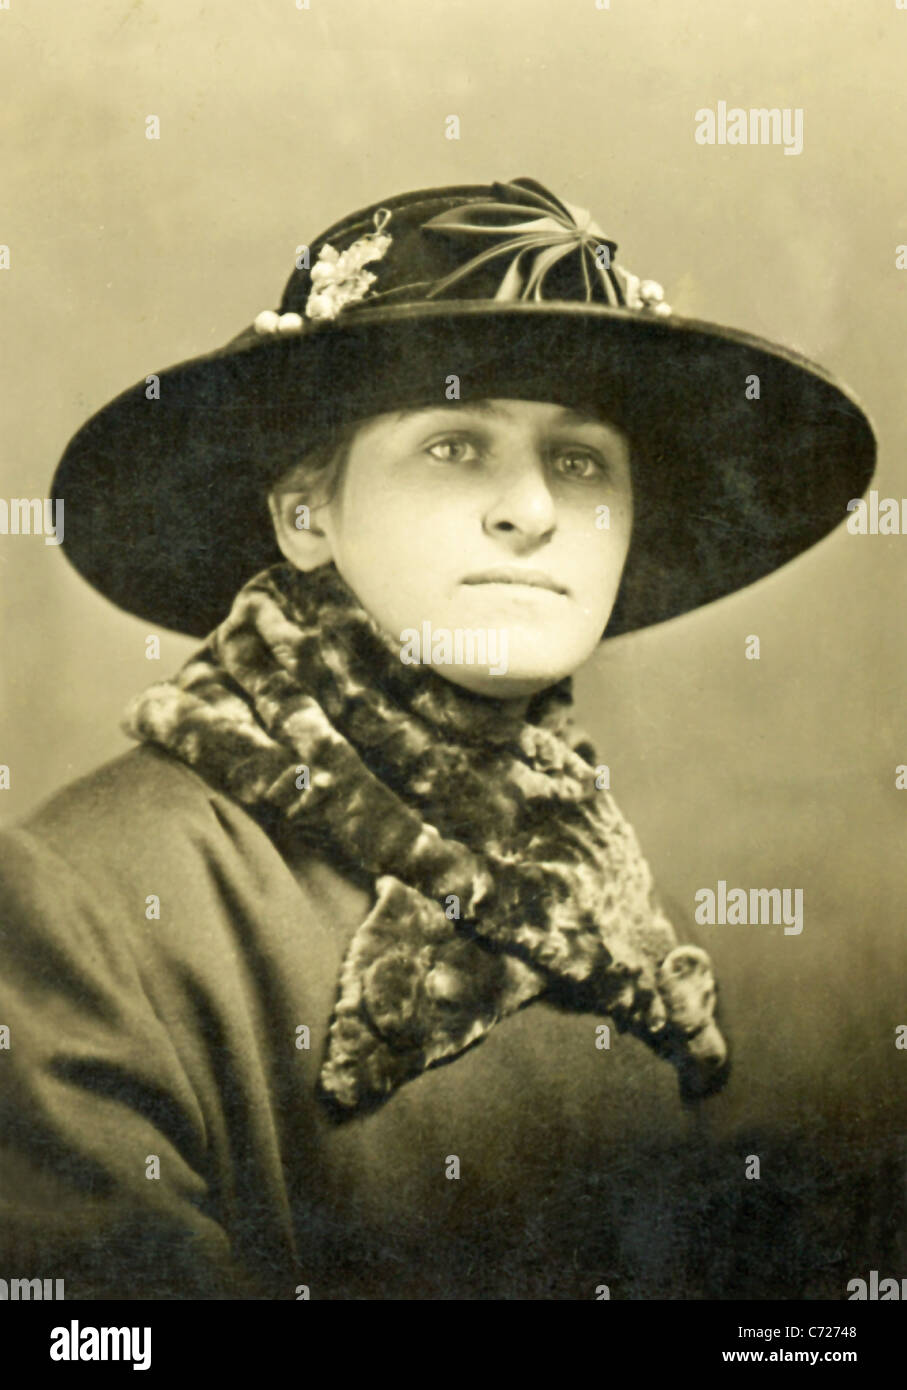 The photo, which dates to 1918, shows a woman in New Bedford, Massachusetts. - Stock Image